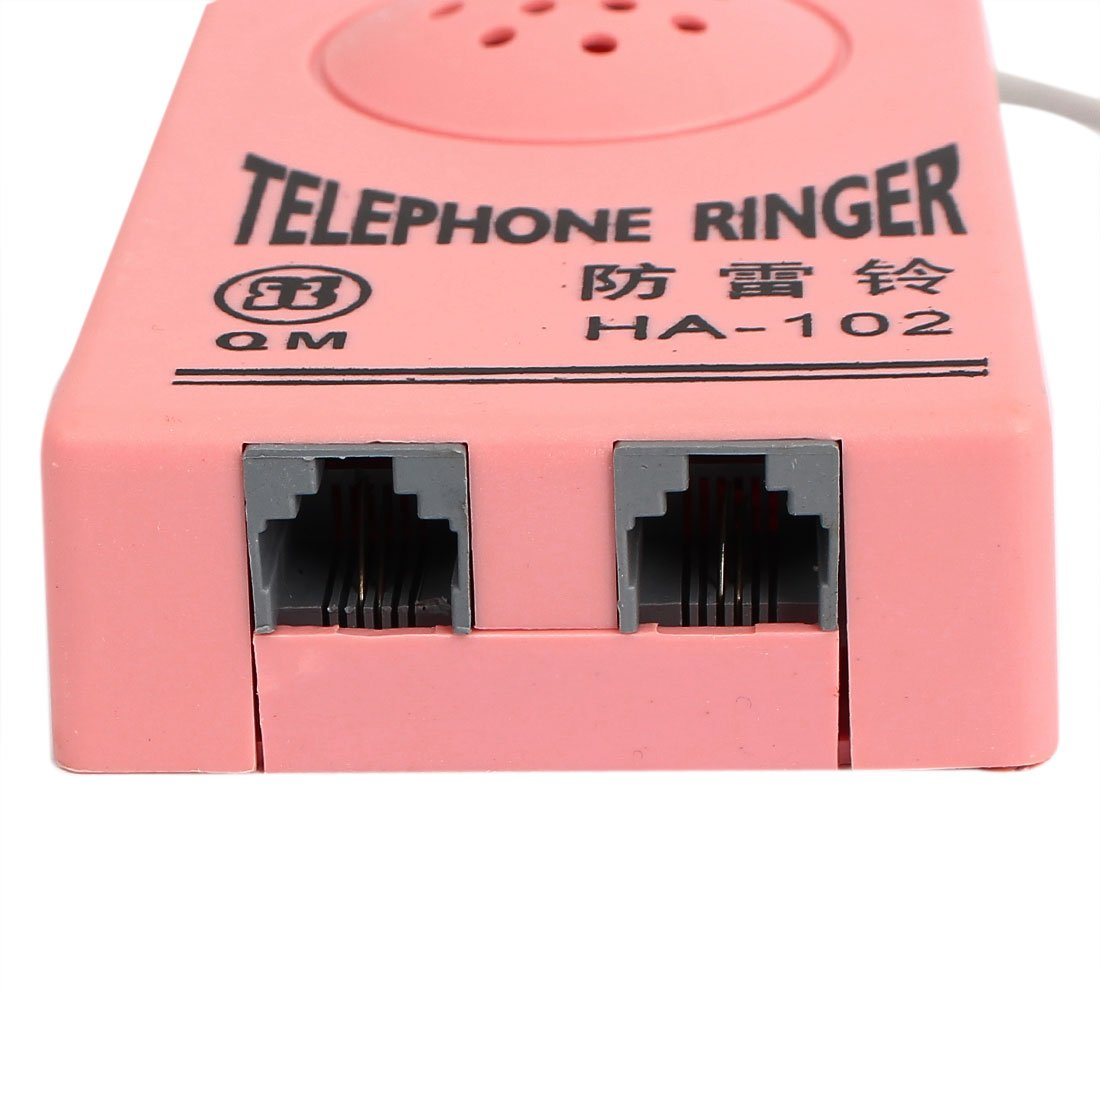 Uxcell Rj11 6p2c Socket Cable Loud Ring Sound Amplifier Telephone Ringer Circuit Pink Home Kitchen